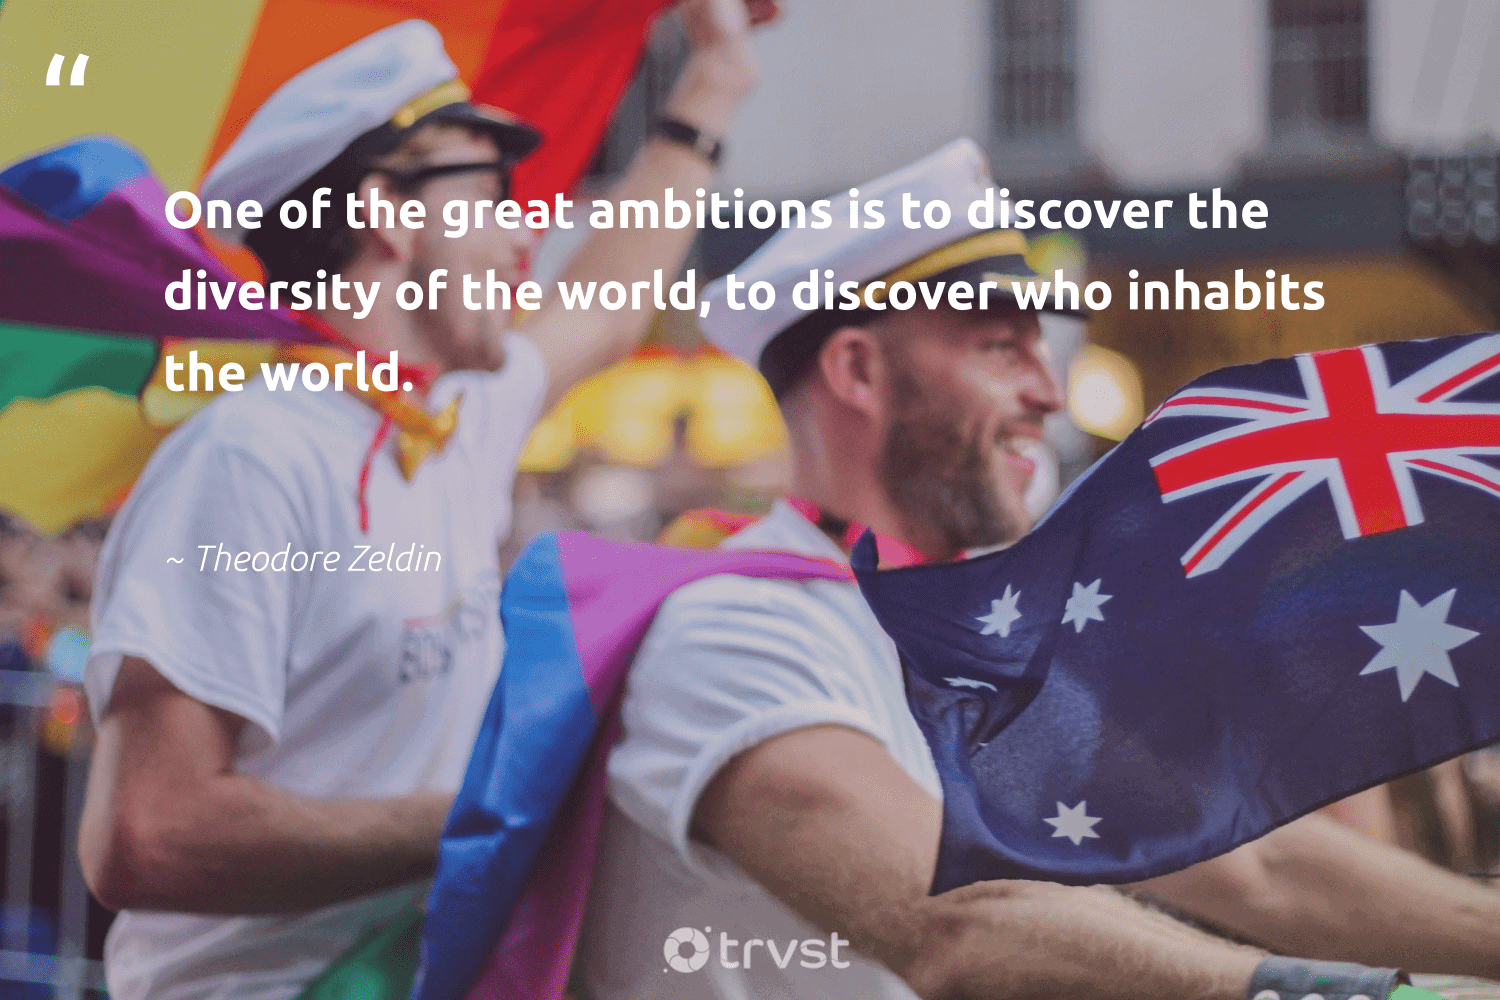 """""""One of the great ambitions is to discover the diversity of the world, to discover who inhabits the world.""""  - Theodore Zeldin #trvst #quotes #diversity #discrimination #representationmatters #socialchange #bethechange #collectiveaction #inclusion #weareallone #socialgood #beinspired"""